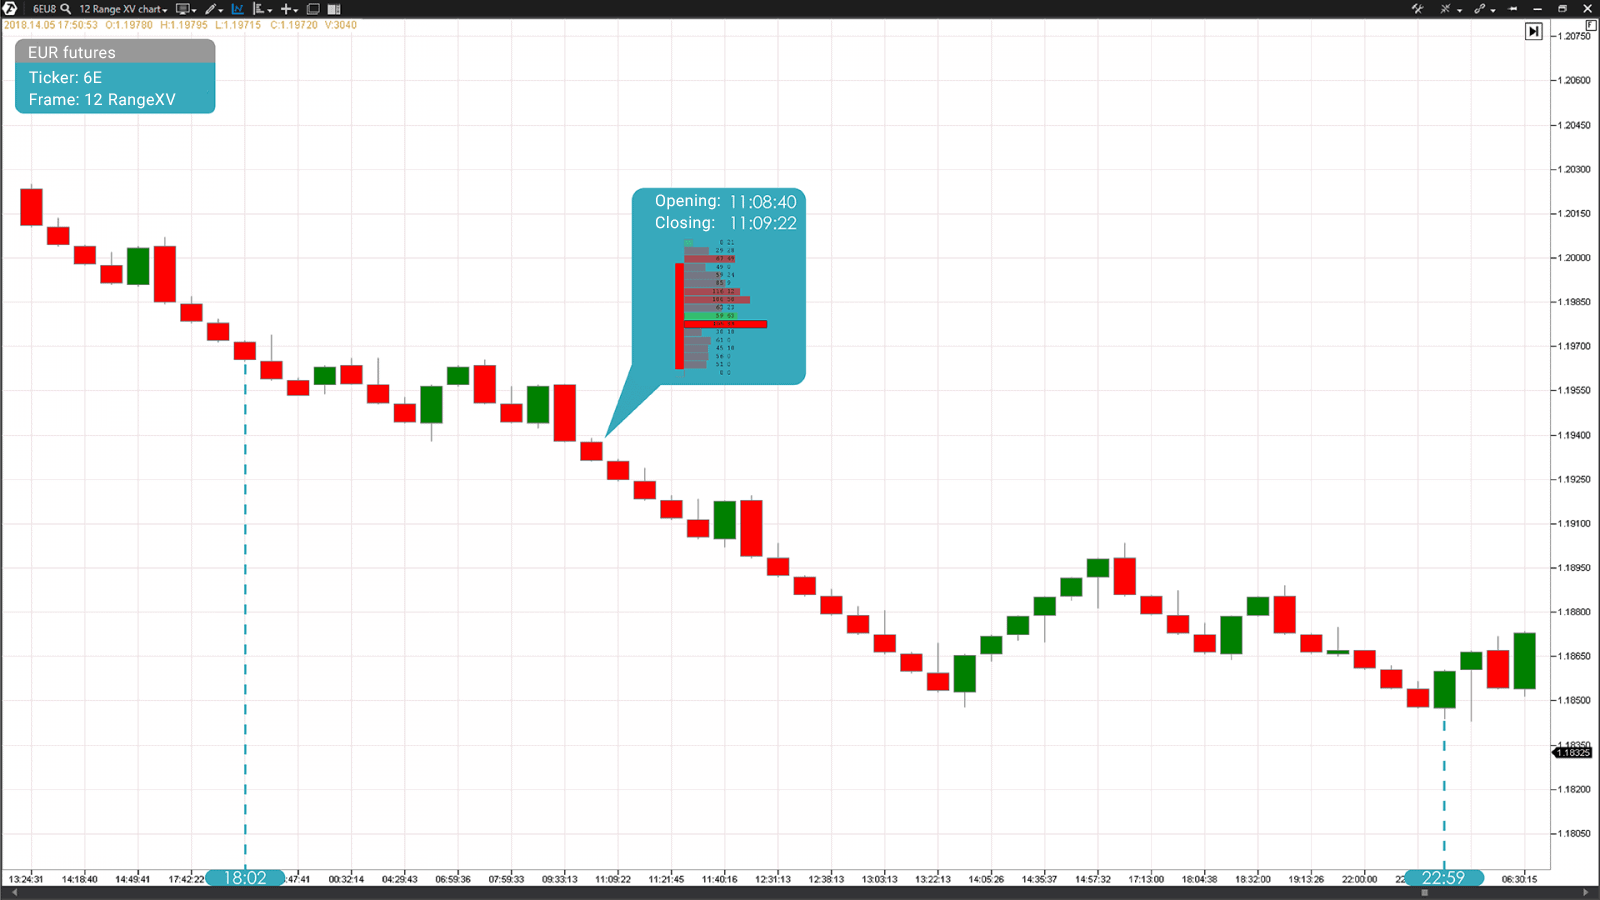 Range chart (RangeX) of a EUR futures contract